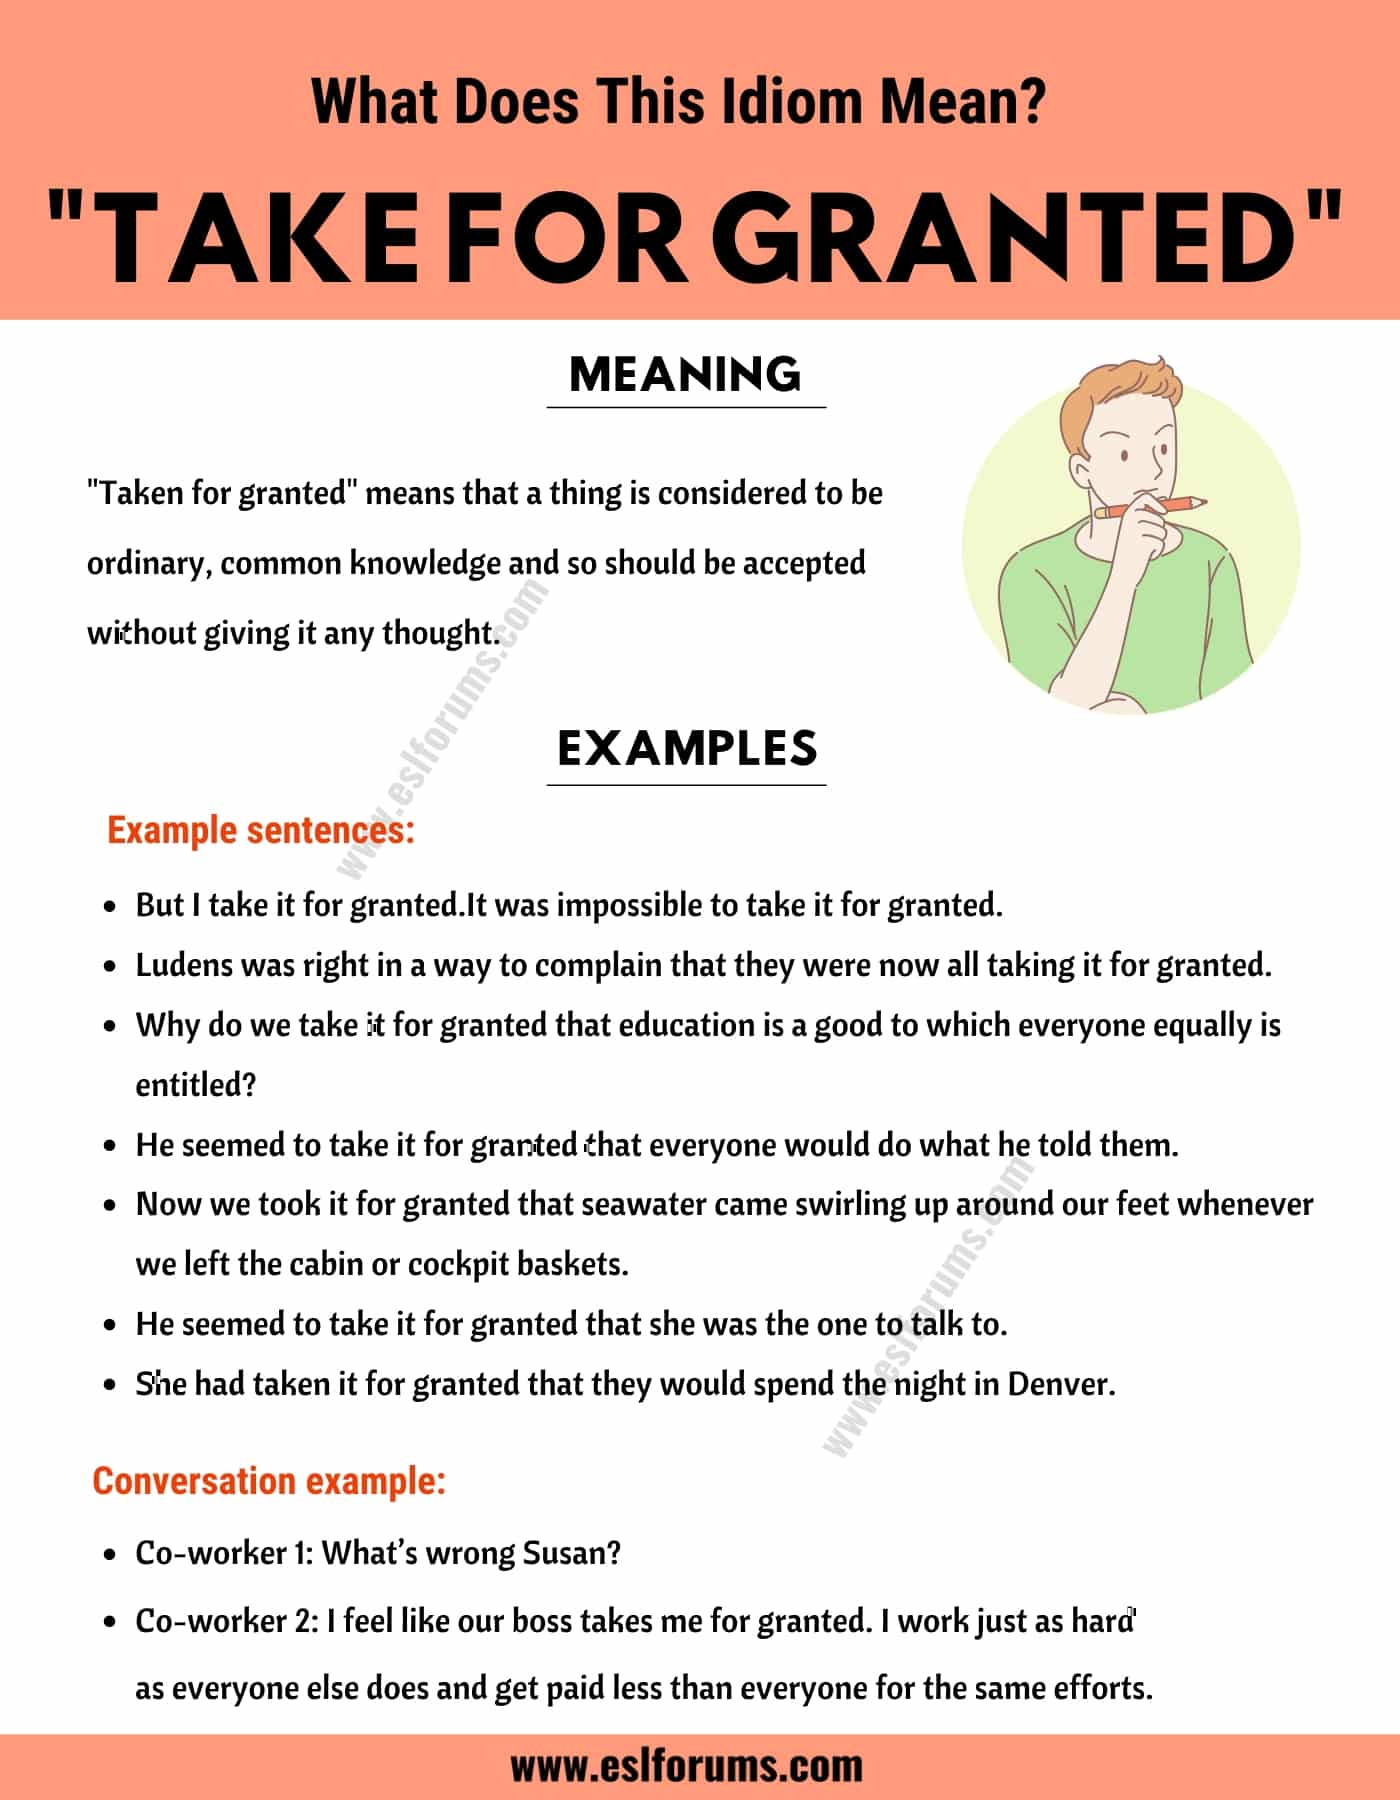 Take for Granted: How Do You Define this Trendy Idiom?